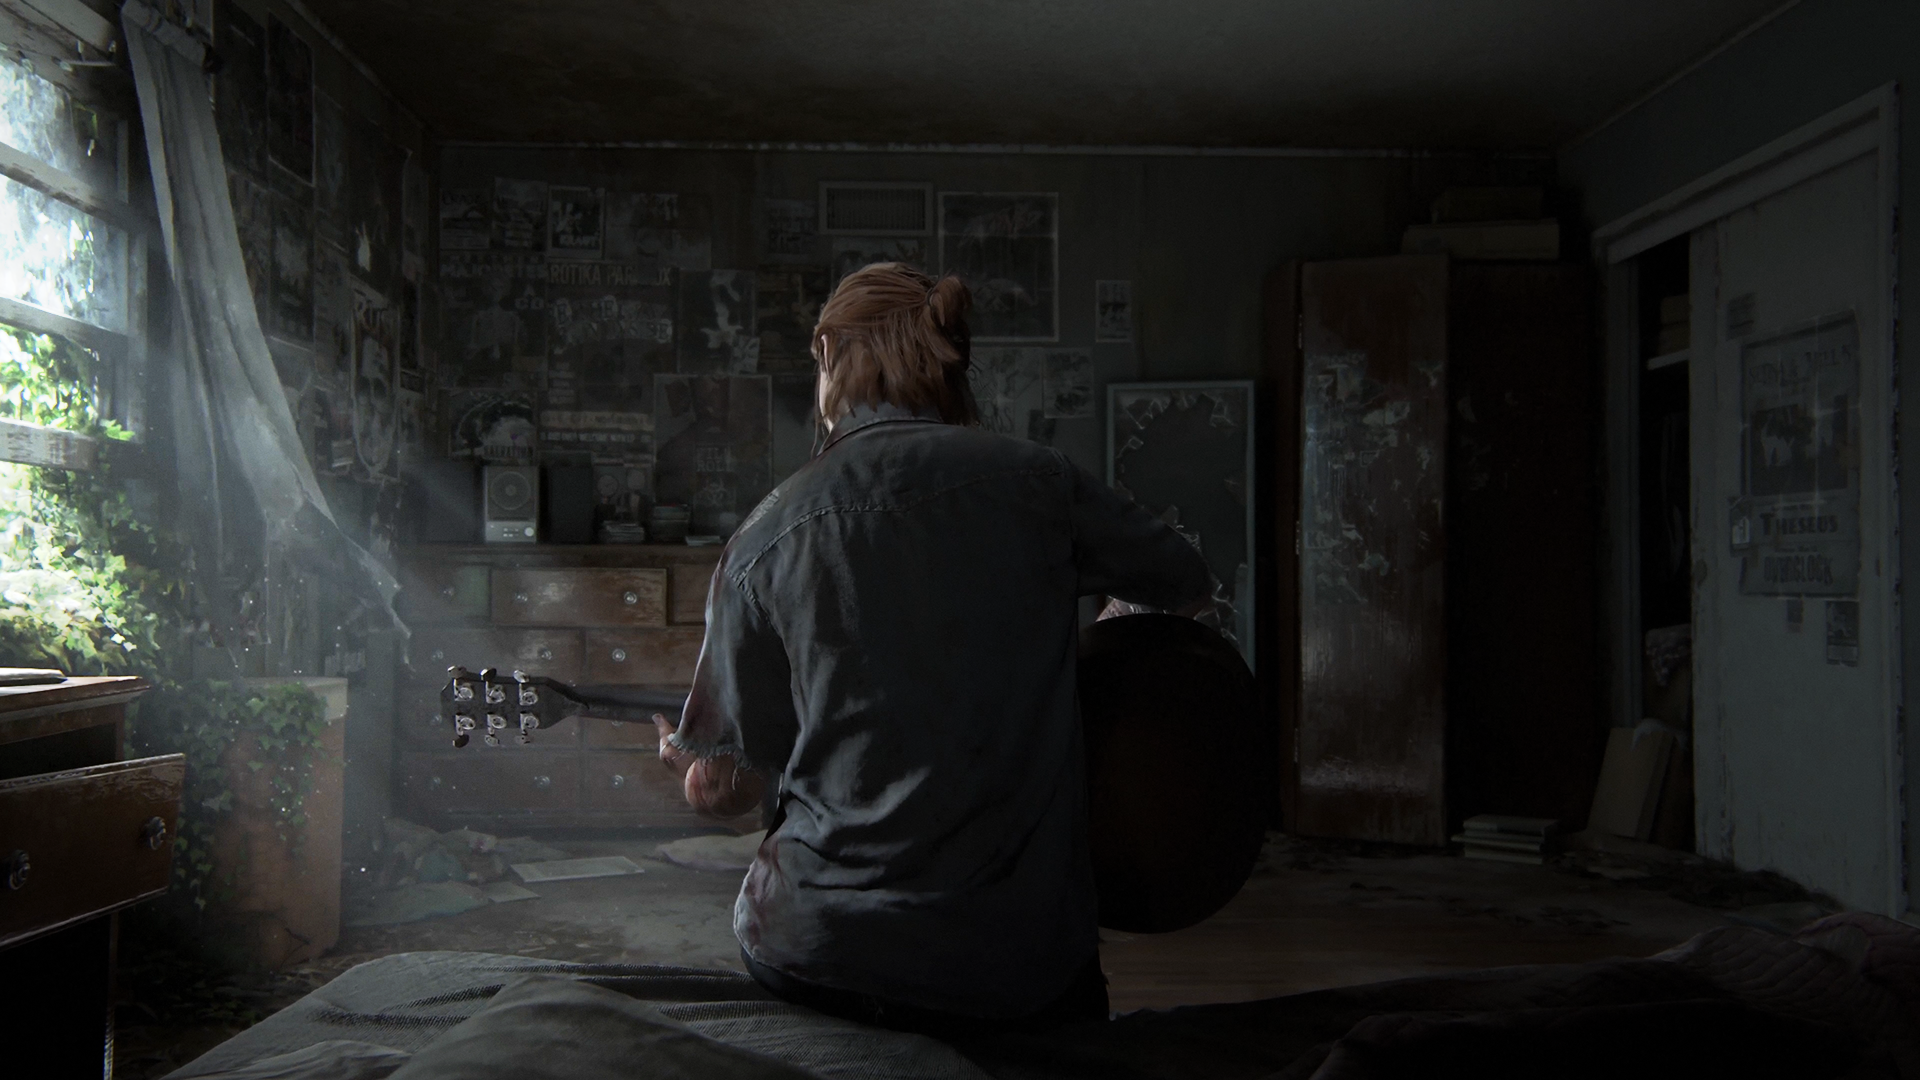 #the Last Of Us Part 2, #the Last Of Us 2 Wallpaper - Last Of Us 2 Backgrounds , HD Wallpaper & Backgrounds